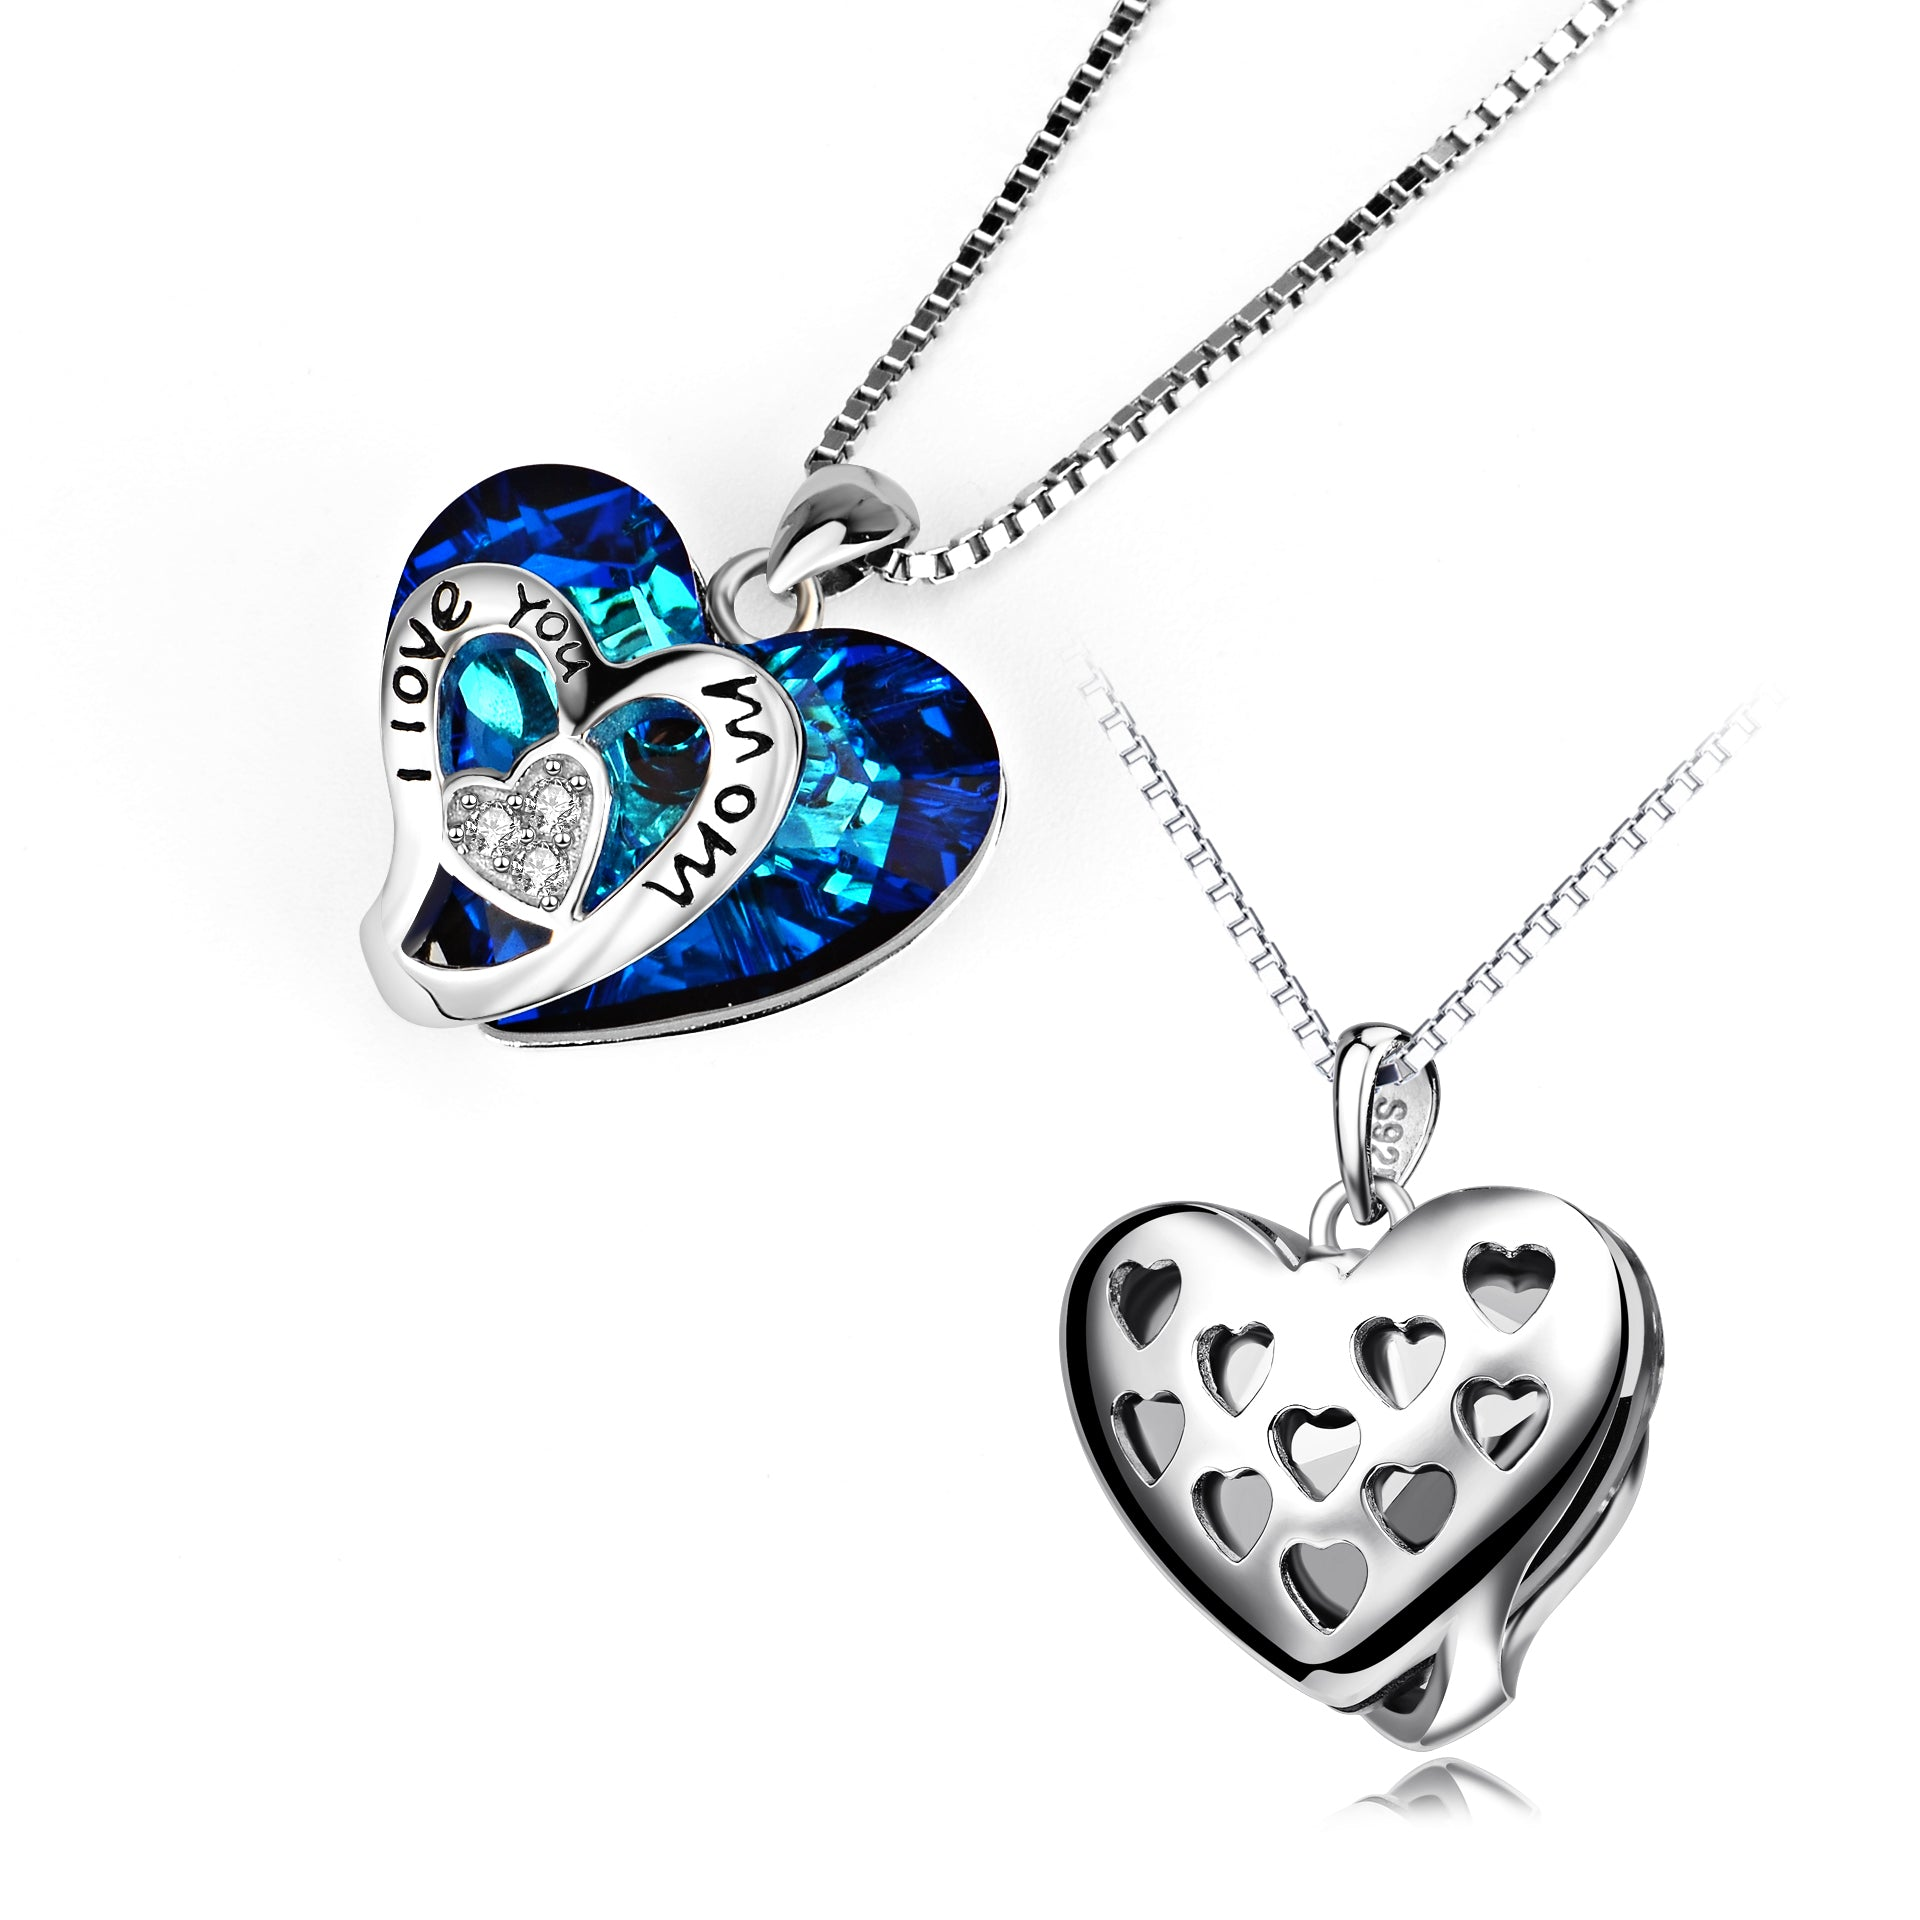 Artigifts Promotional Gifts Best Mother Heart Shaped Pendant Heart Necklace